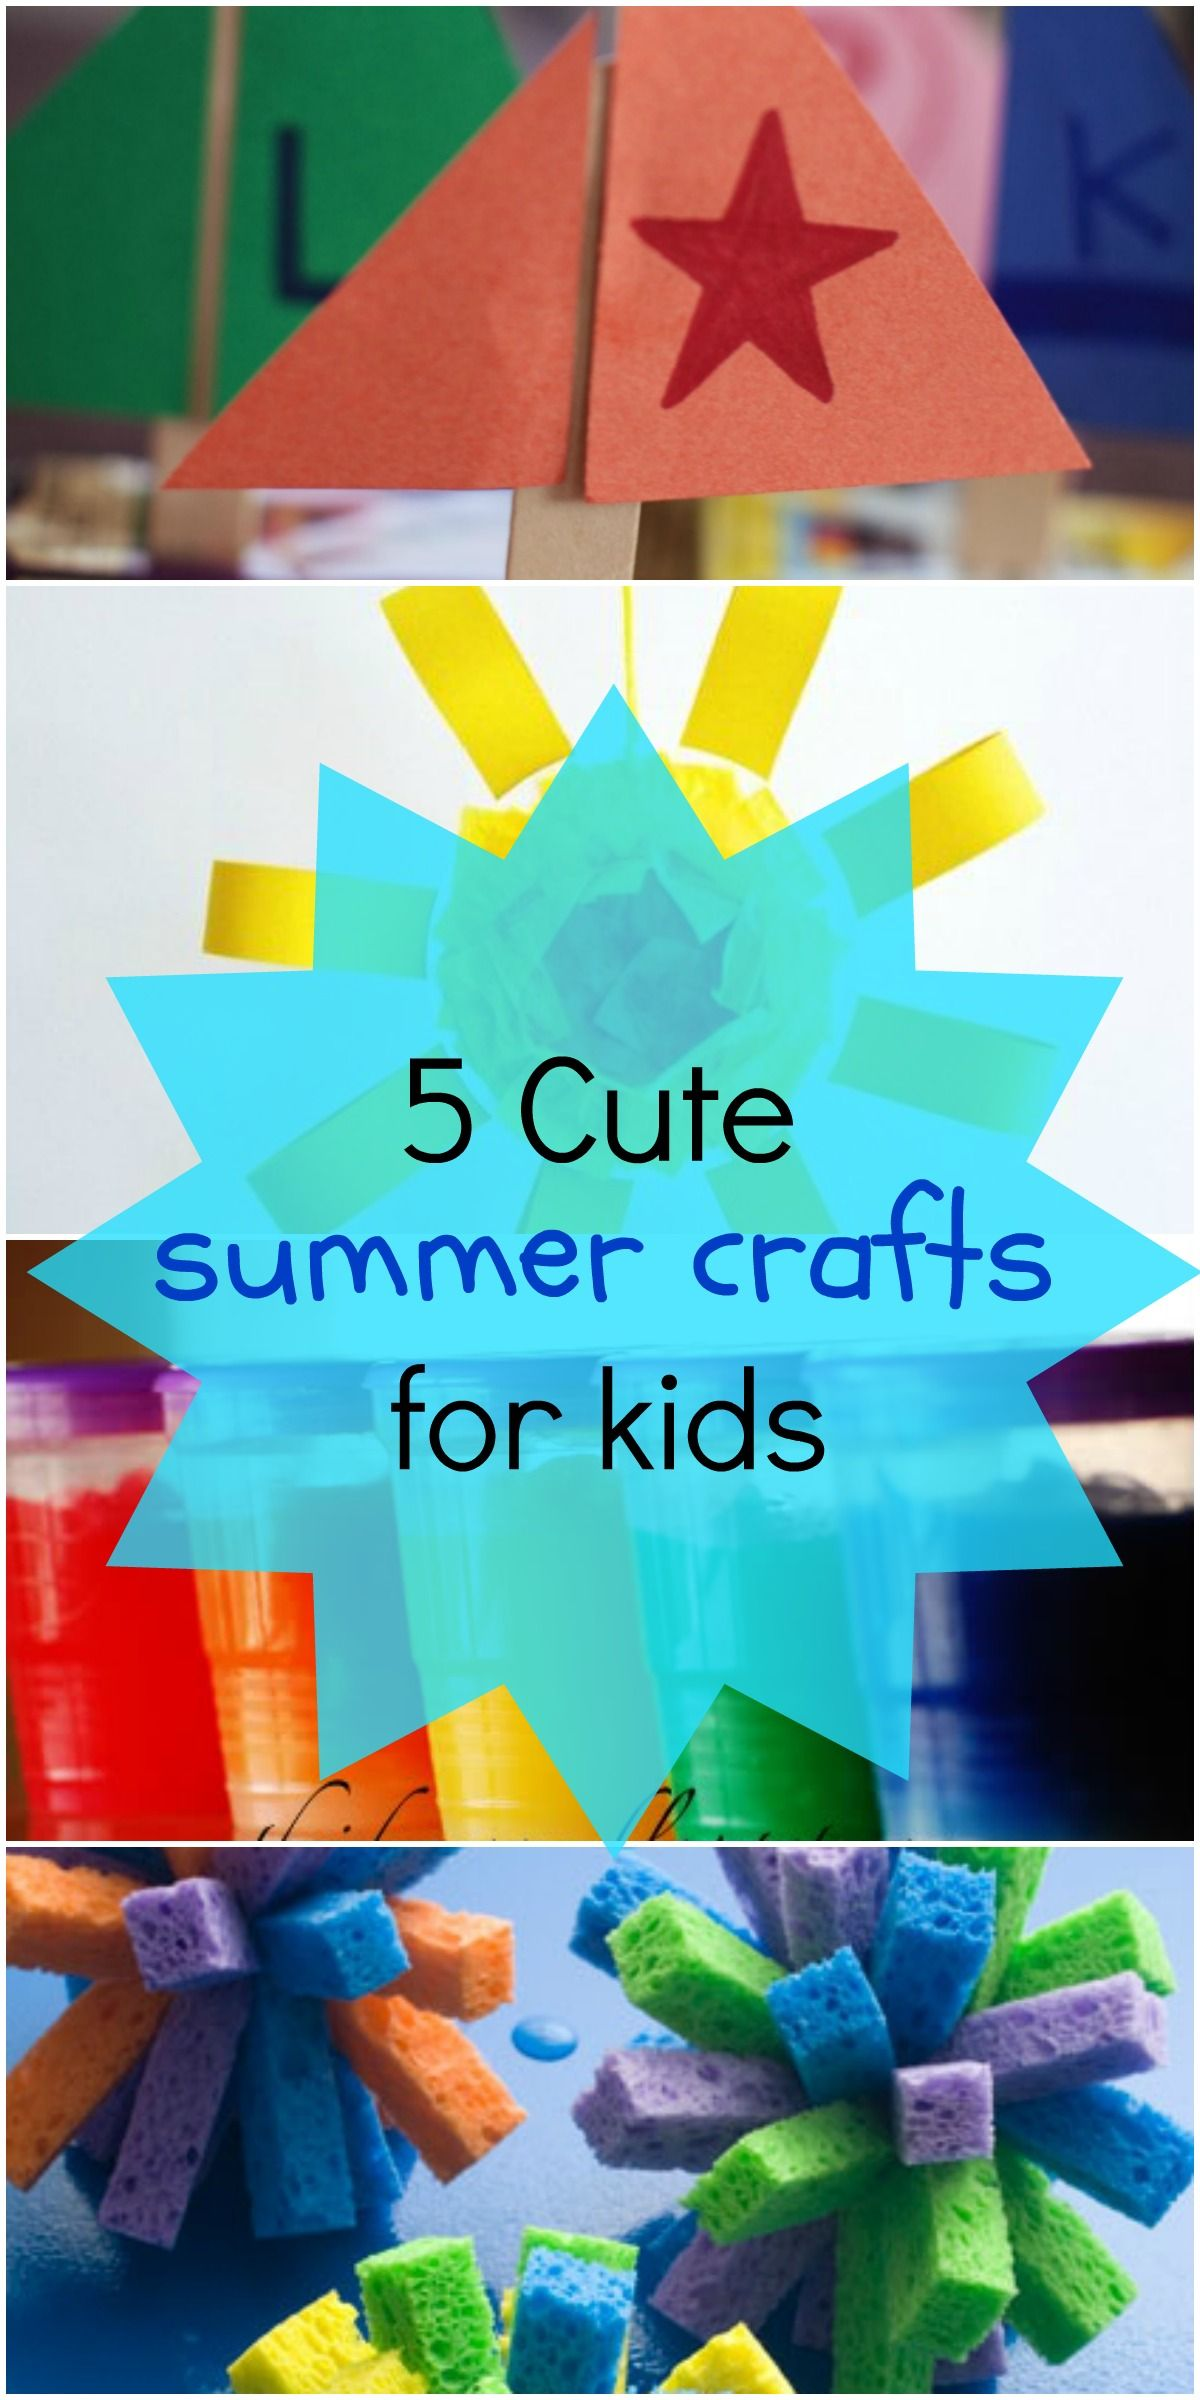 Kid Craft Ideas For Summer Part - 30: 5 Fun Summer Crafts For Kids - Love These Art Project Ideas!